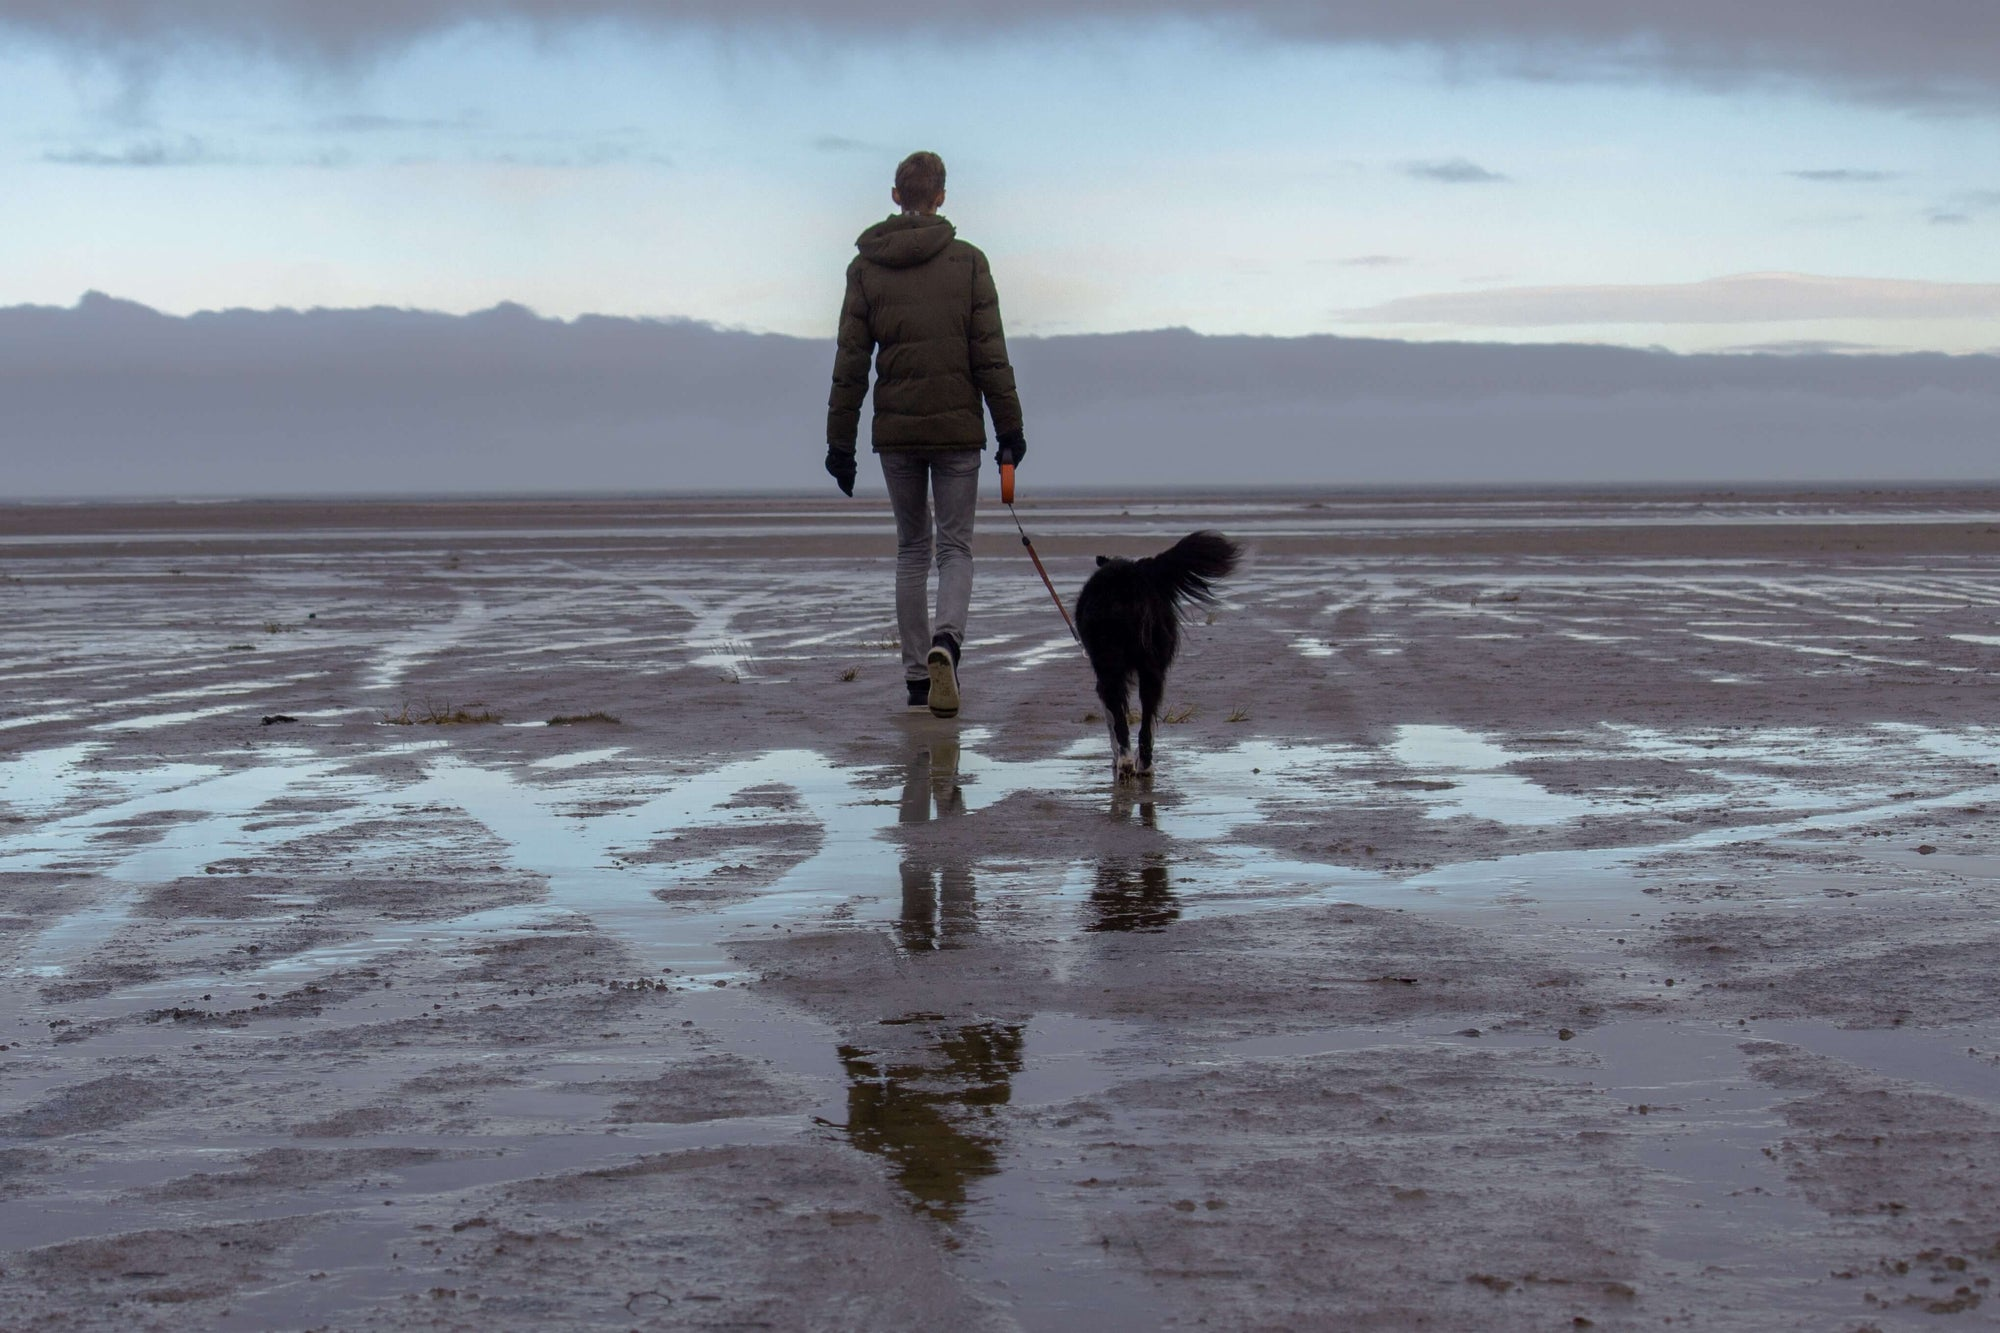 person and dog walking on a beach